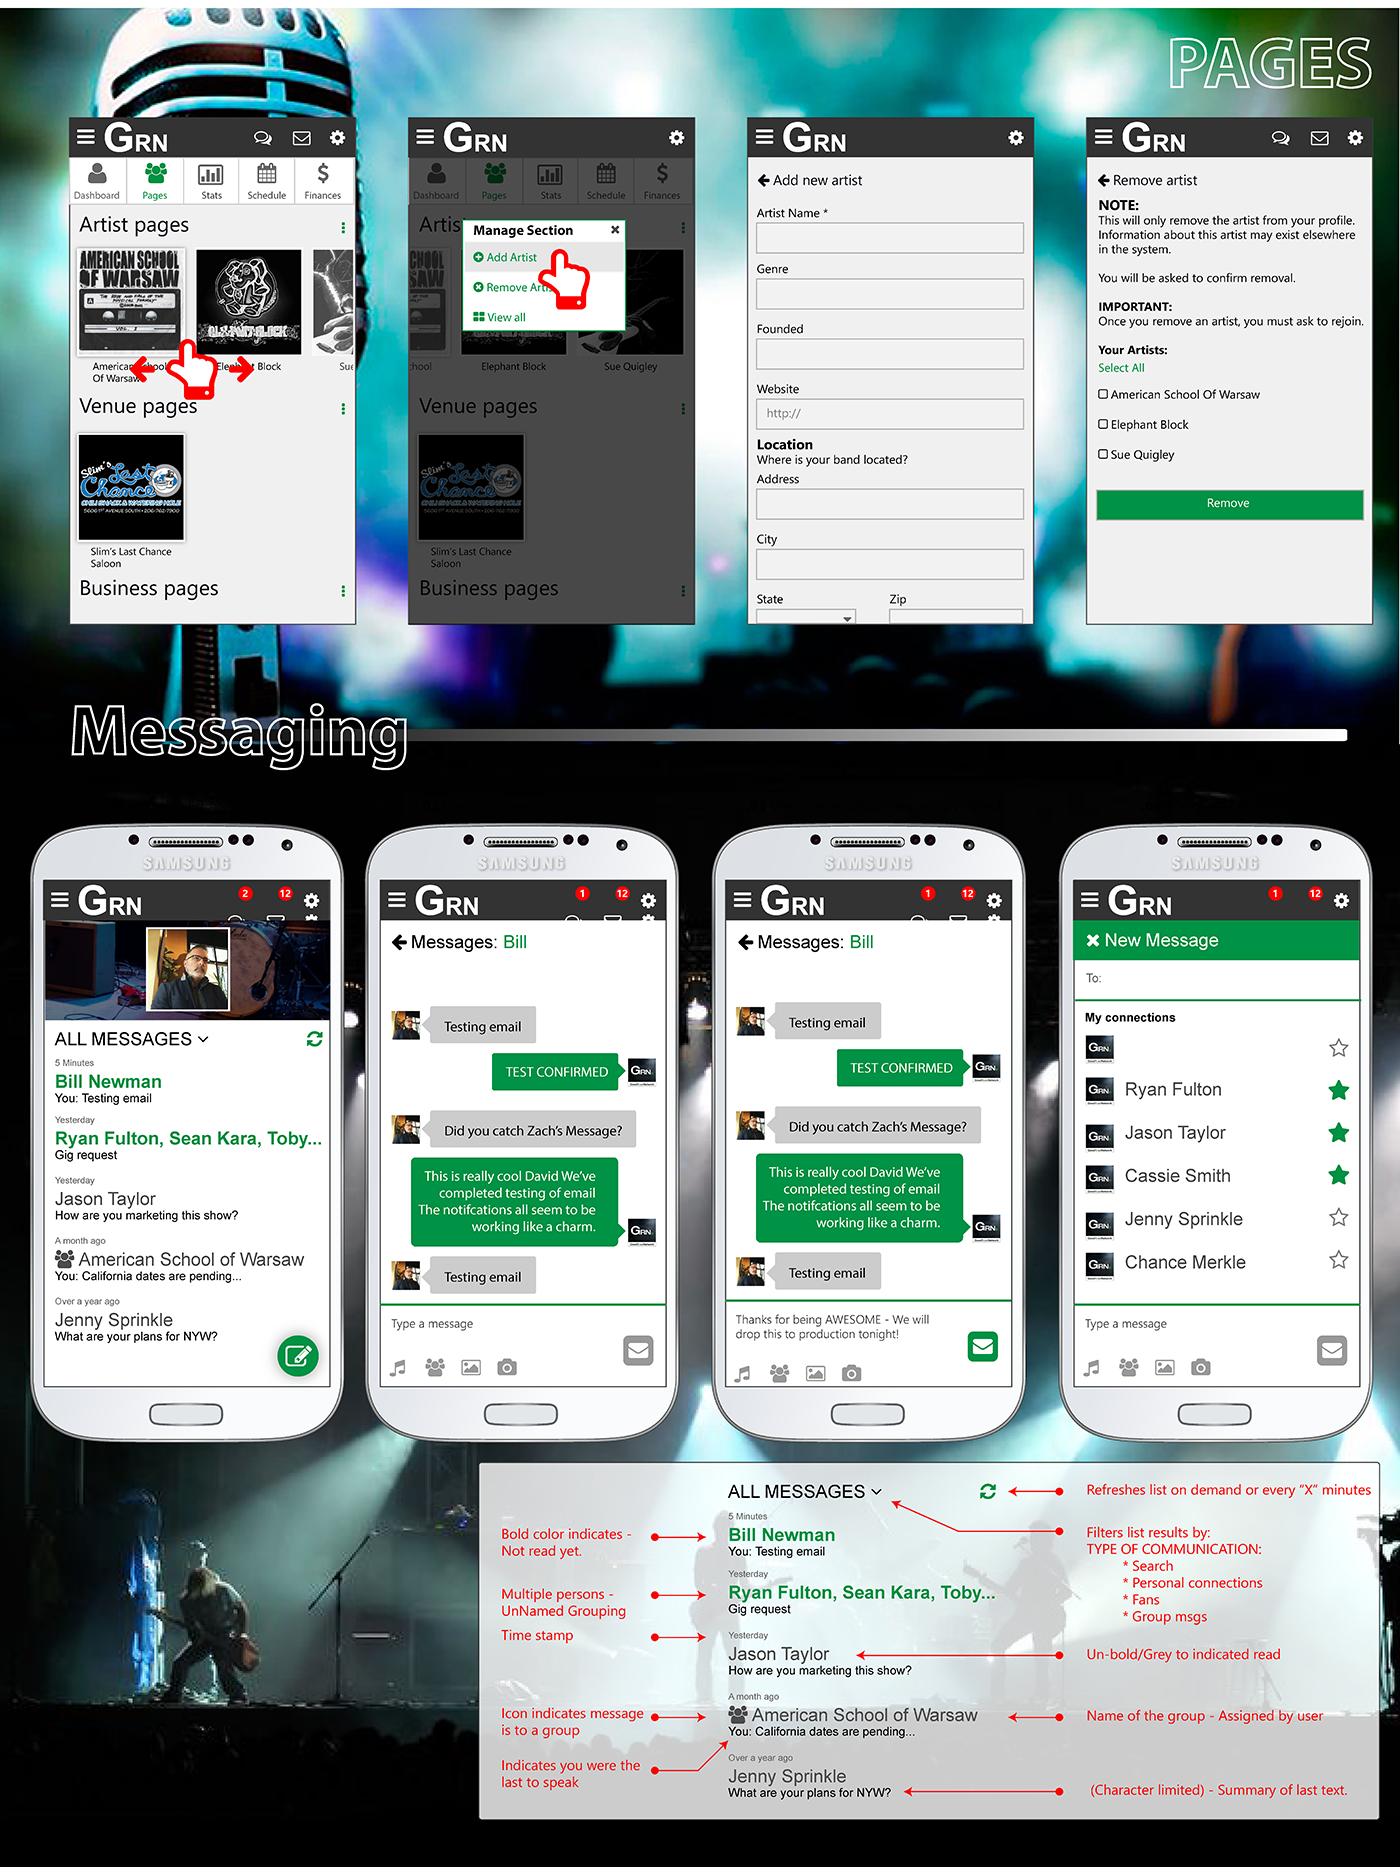 GoodRoadNetwork: Mobile chat application that was integrated into the mobile version of the project.